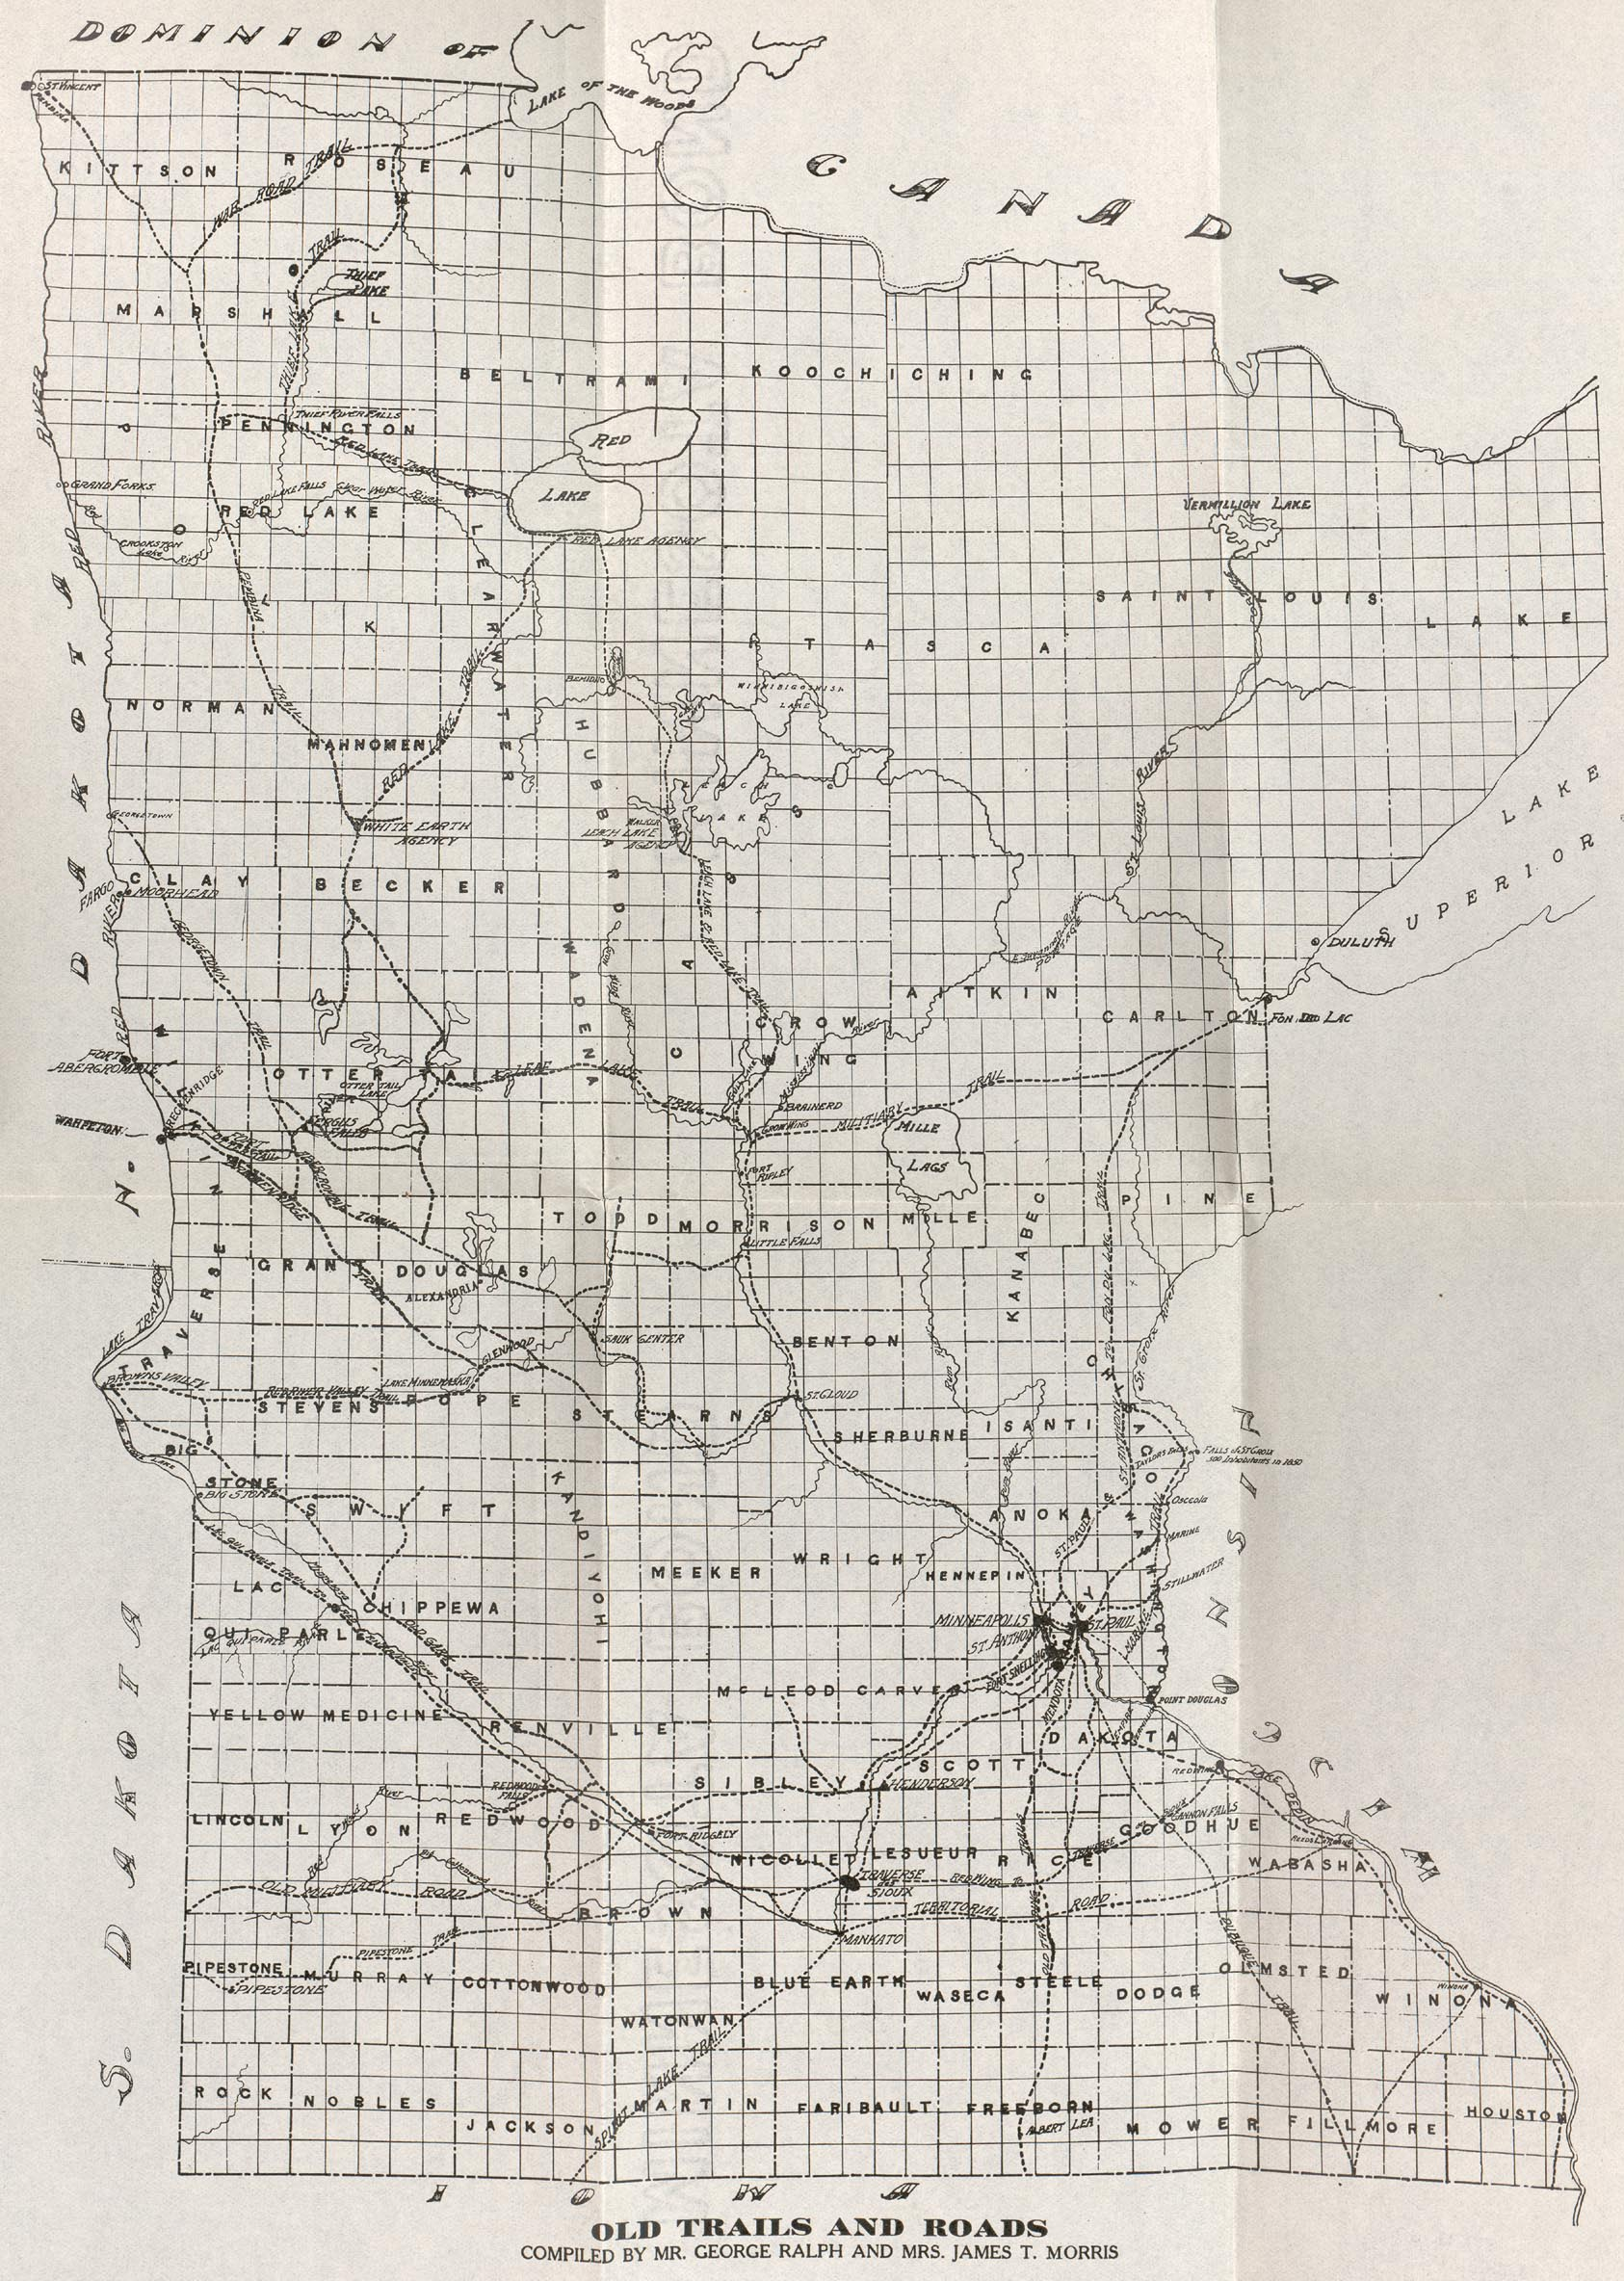 Minnesota Old Trails and Roads Map, United States 1914